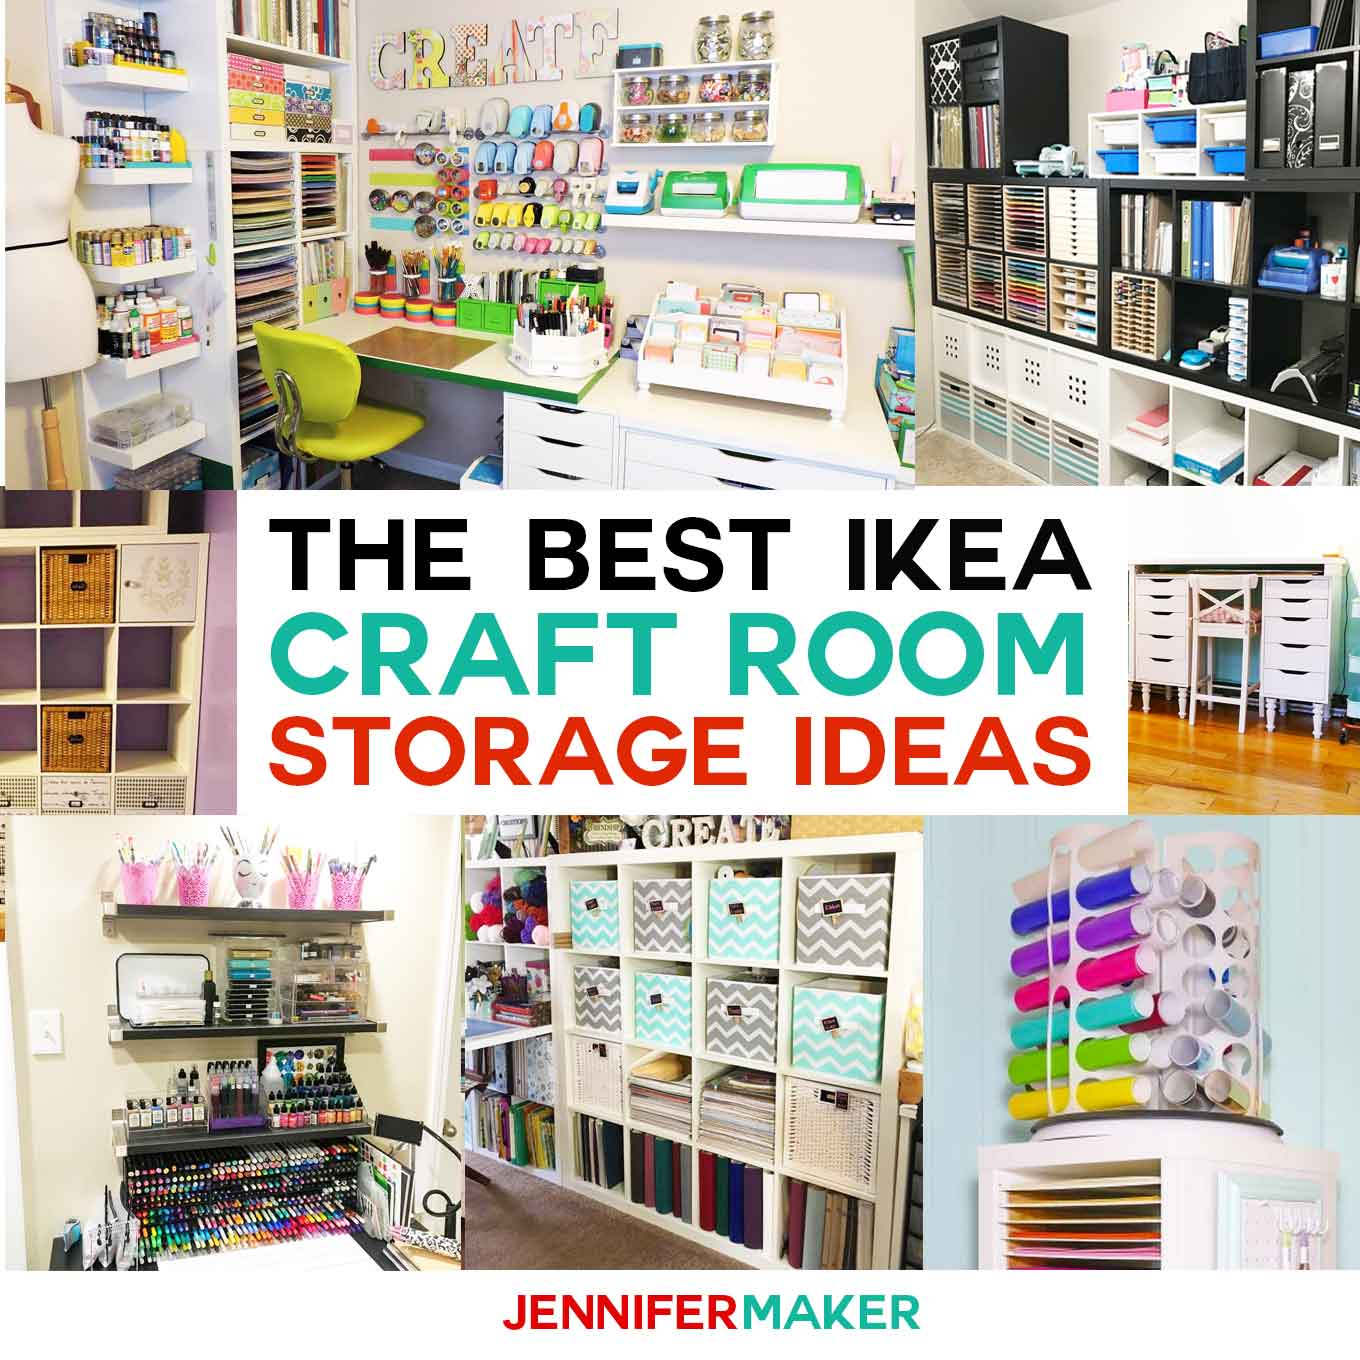 Storage Room Design Ideas: The Best IKEA Craft Room Storage Shelves & Ideas